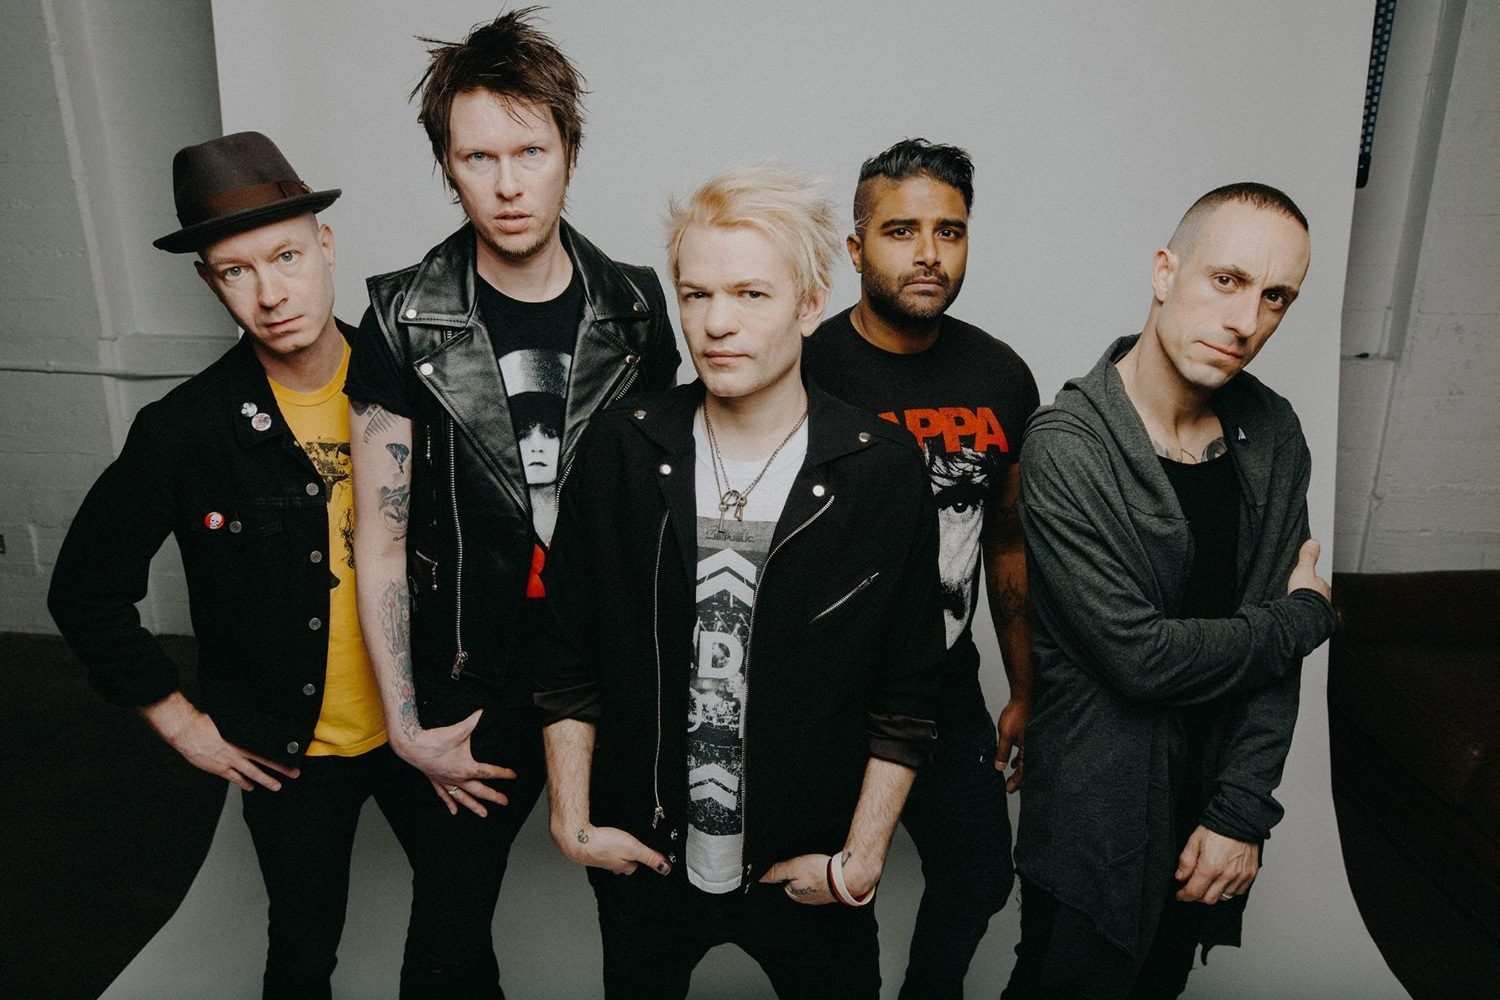 Sum 41 are going to play an intimate London headline show later this month